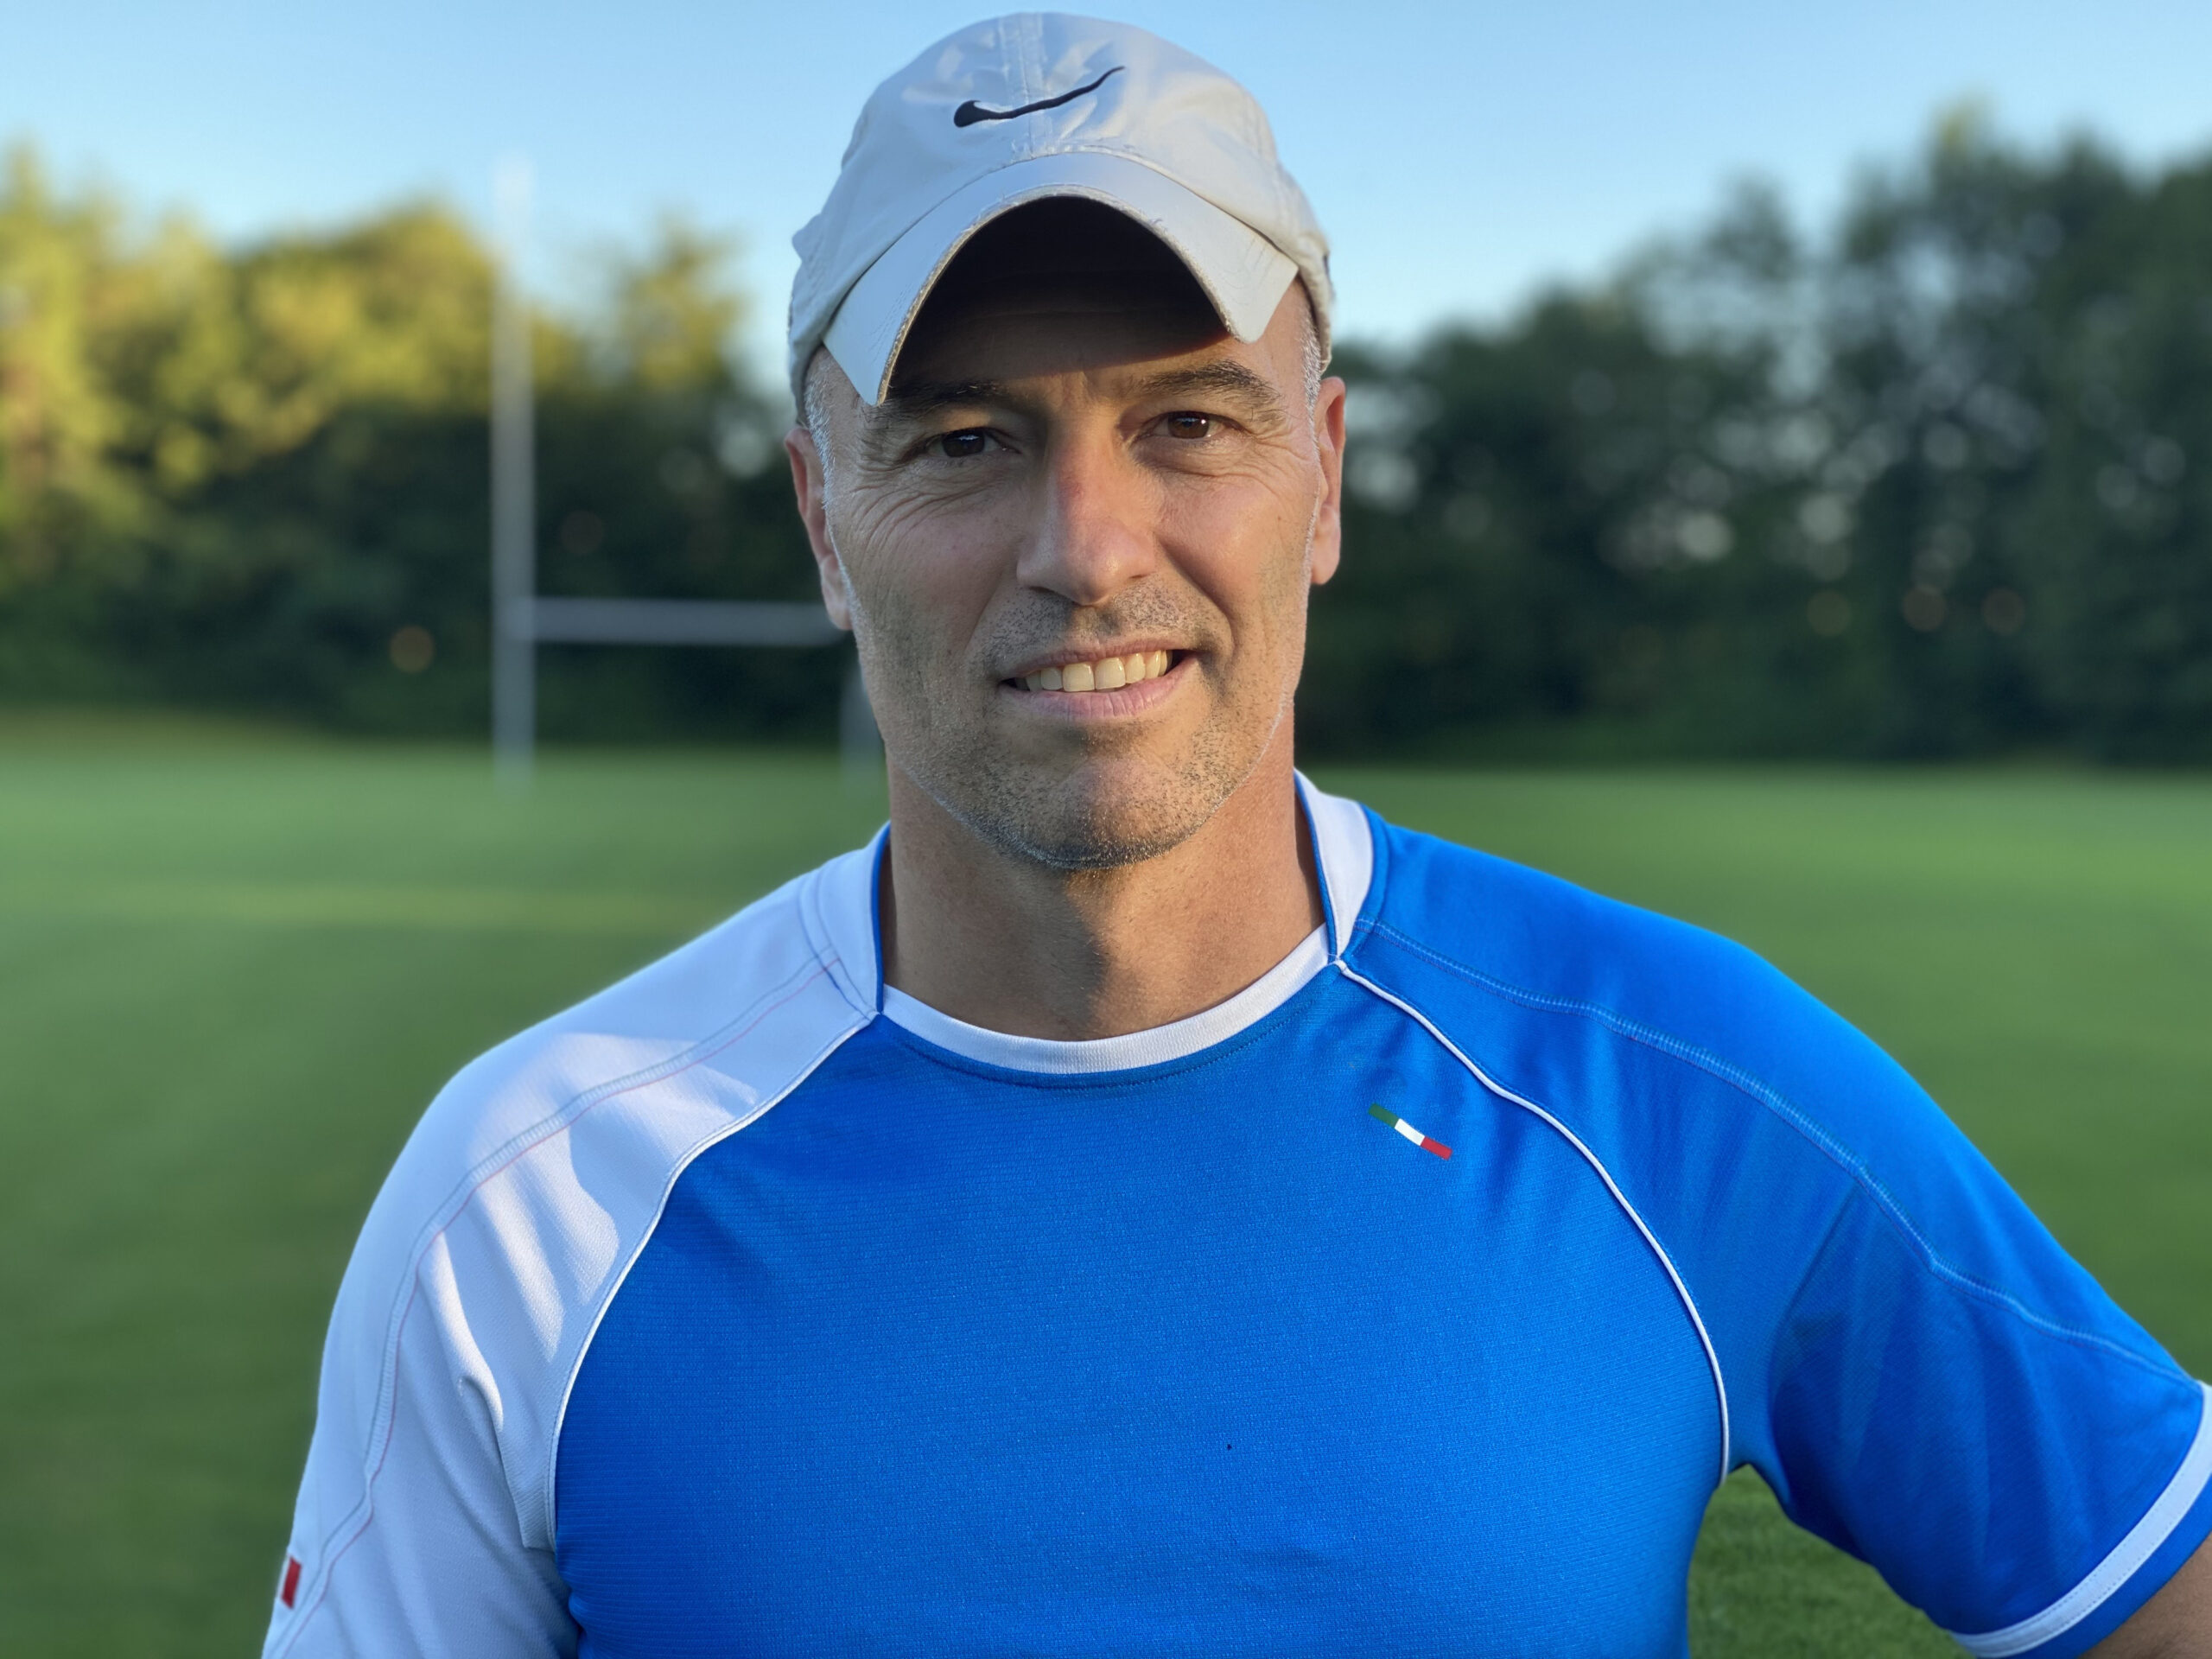 Umberto Re neuer Headcoach beim MRFC